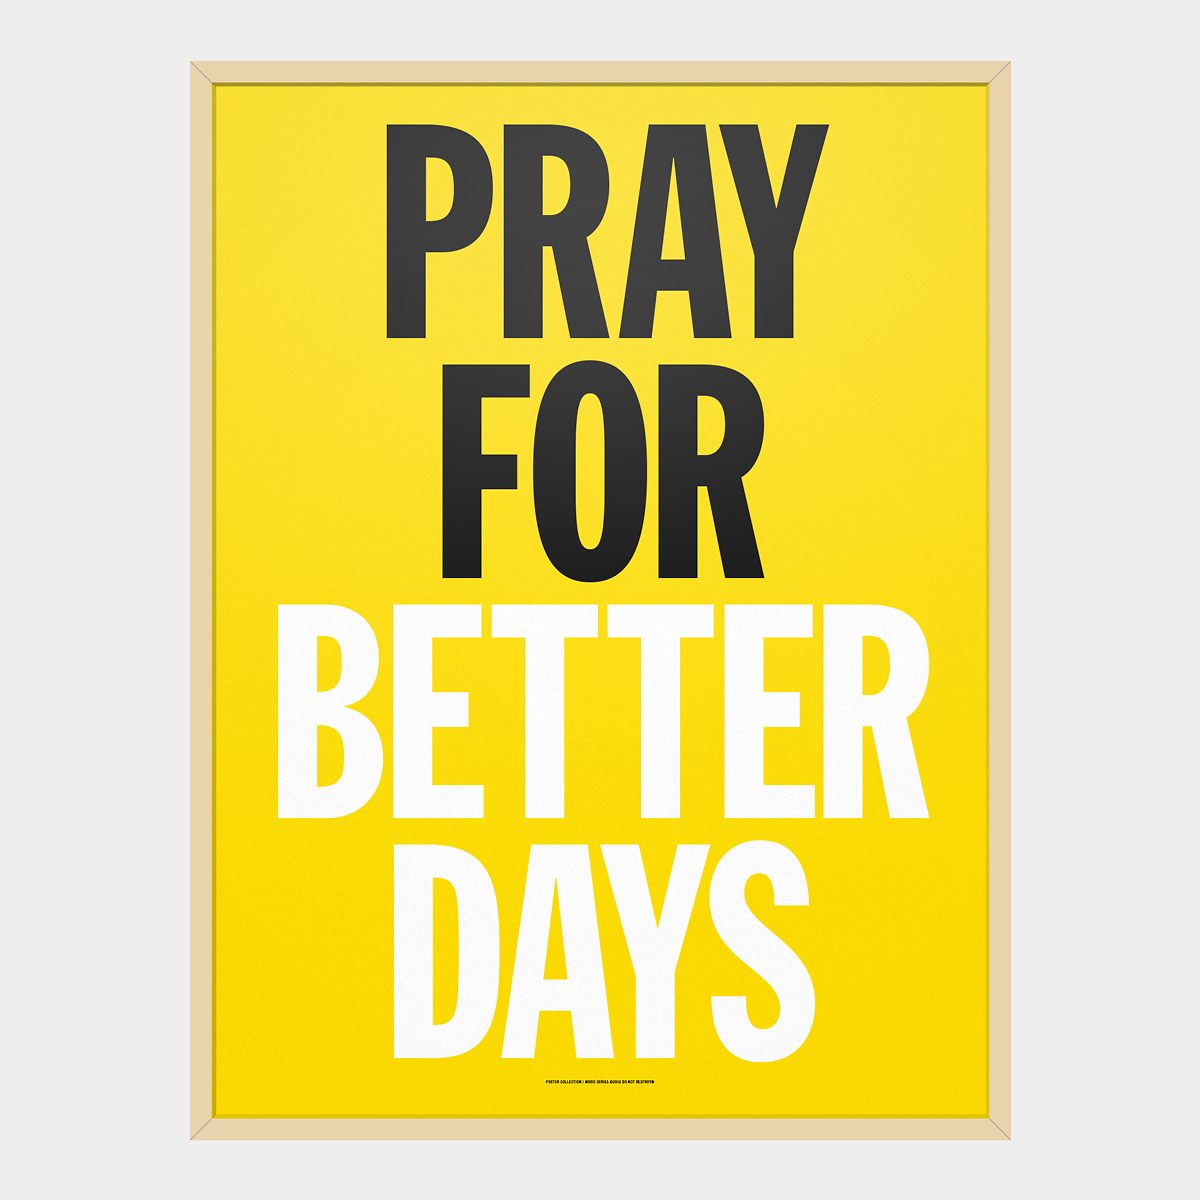 2pac better days poster